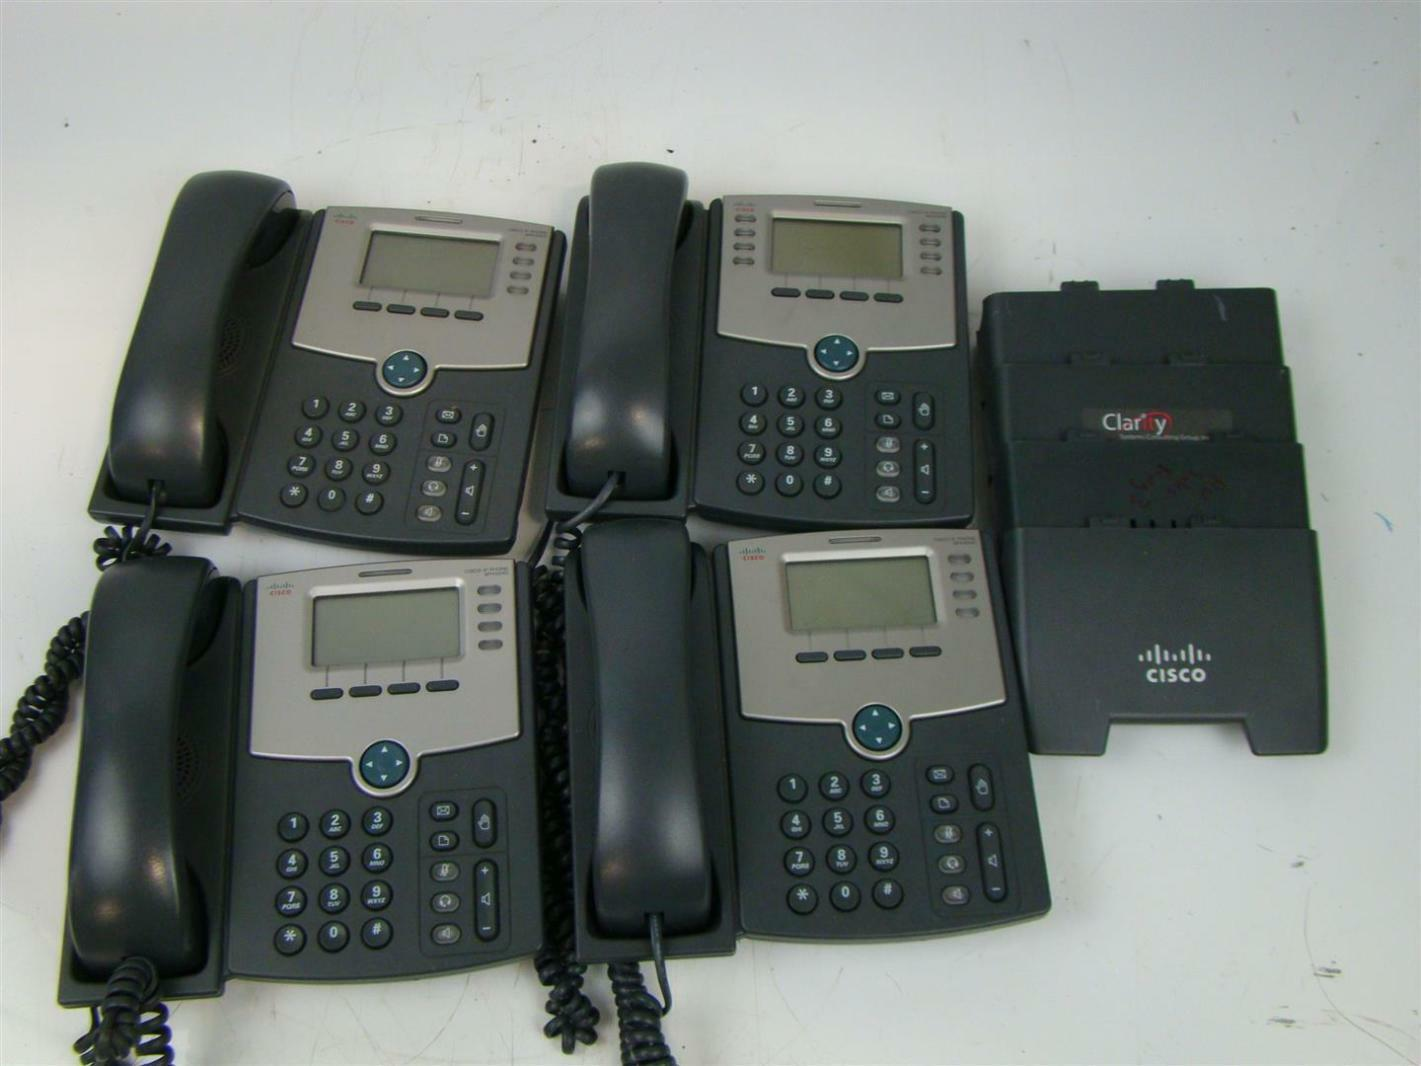 Details about 4 CISCO IP PHONES SPA5046 4 LINE IP PHONE WITH DISPLAY  CBT1441013B